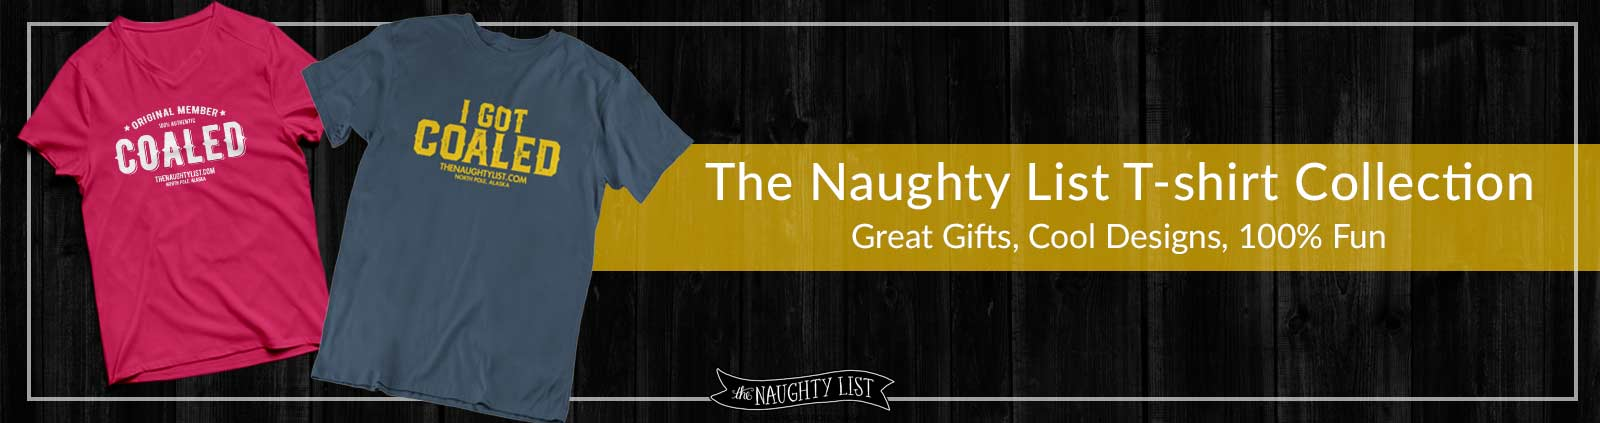 543cdf688cf38 The Naughty List T-shirt Collection - The Naughty List